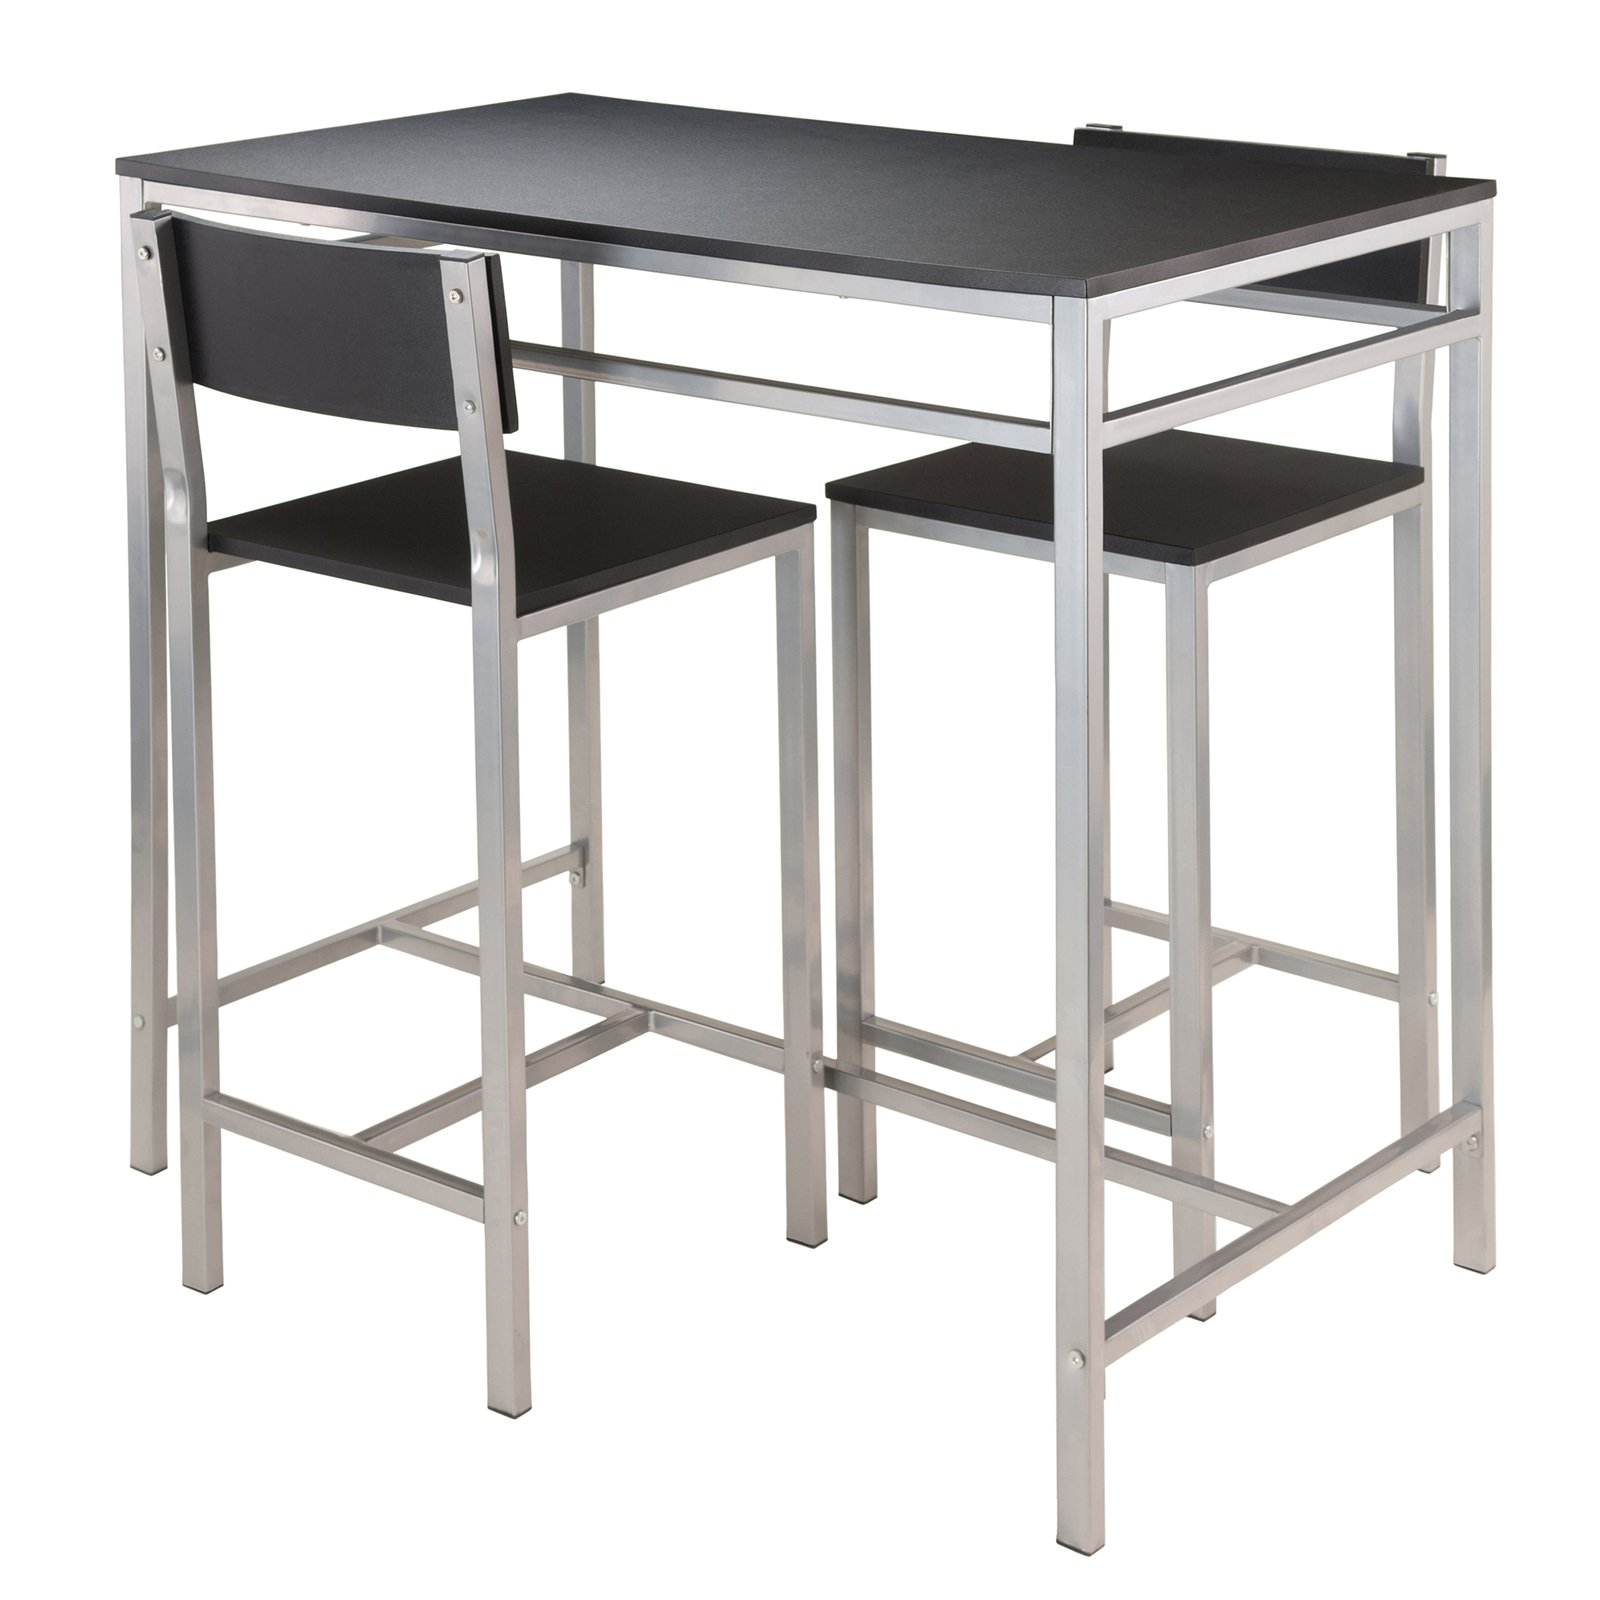 Winsome Hanley 3 Piece Kitchen High Table Set, Black Top/Metal Frame